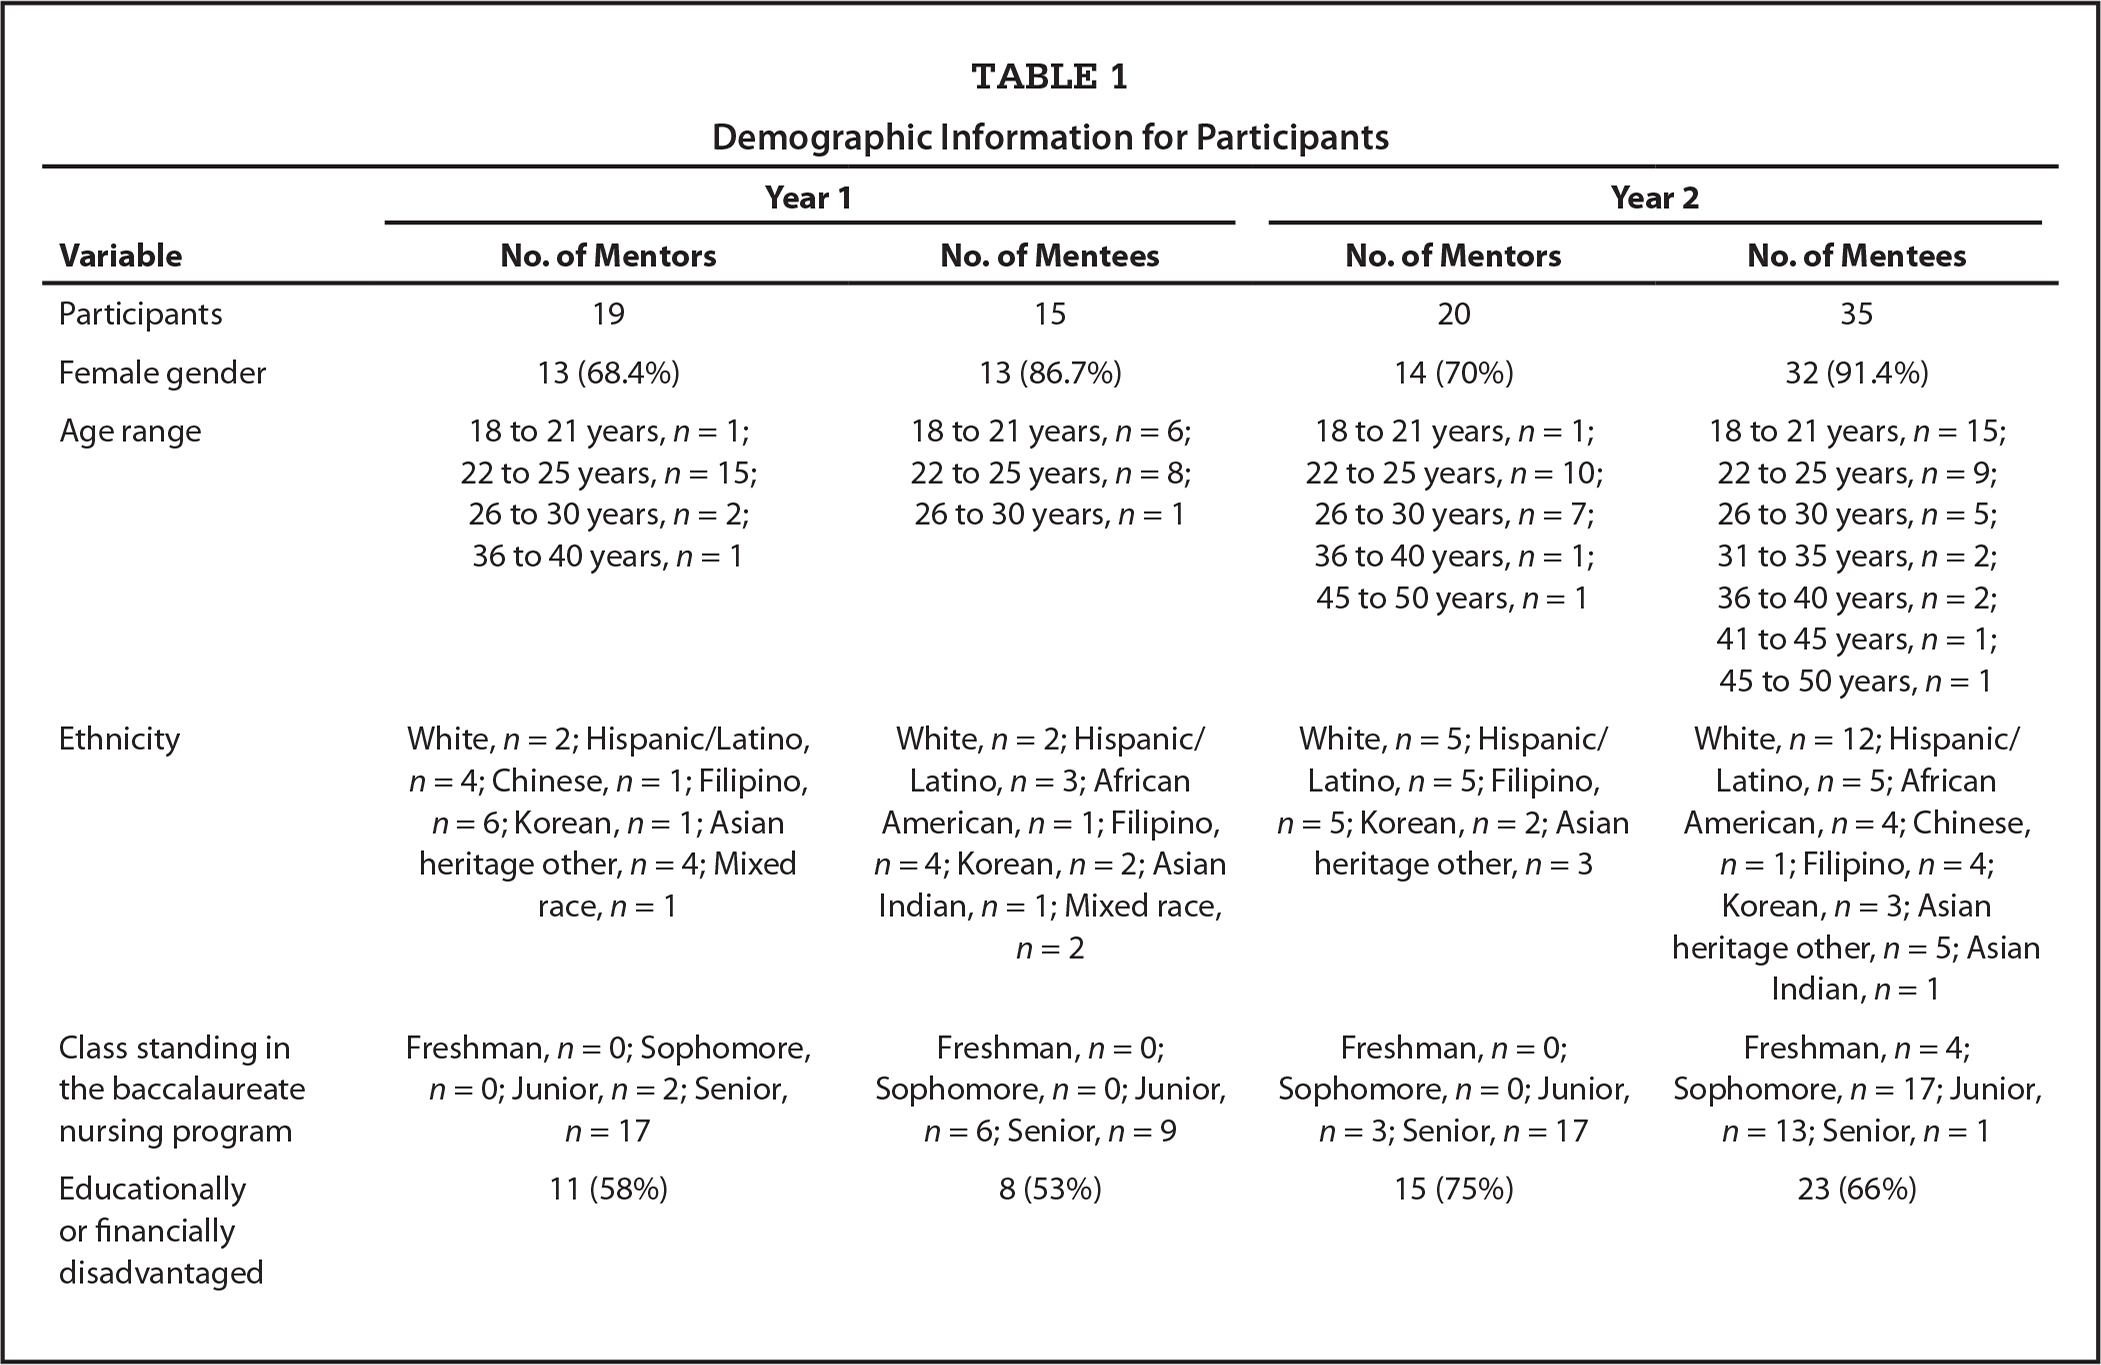 Demographic Information for Participants